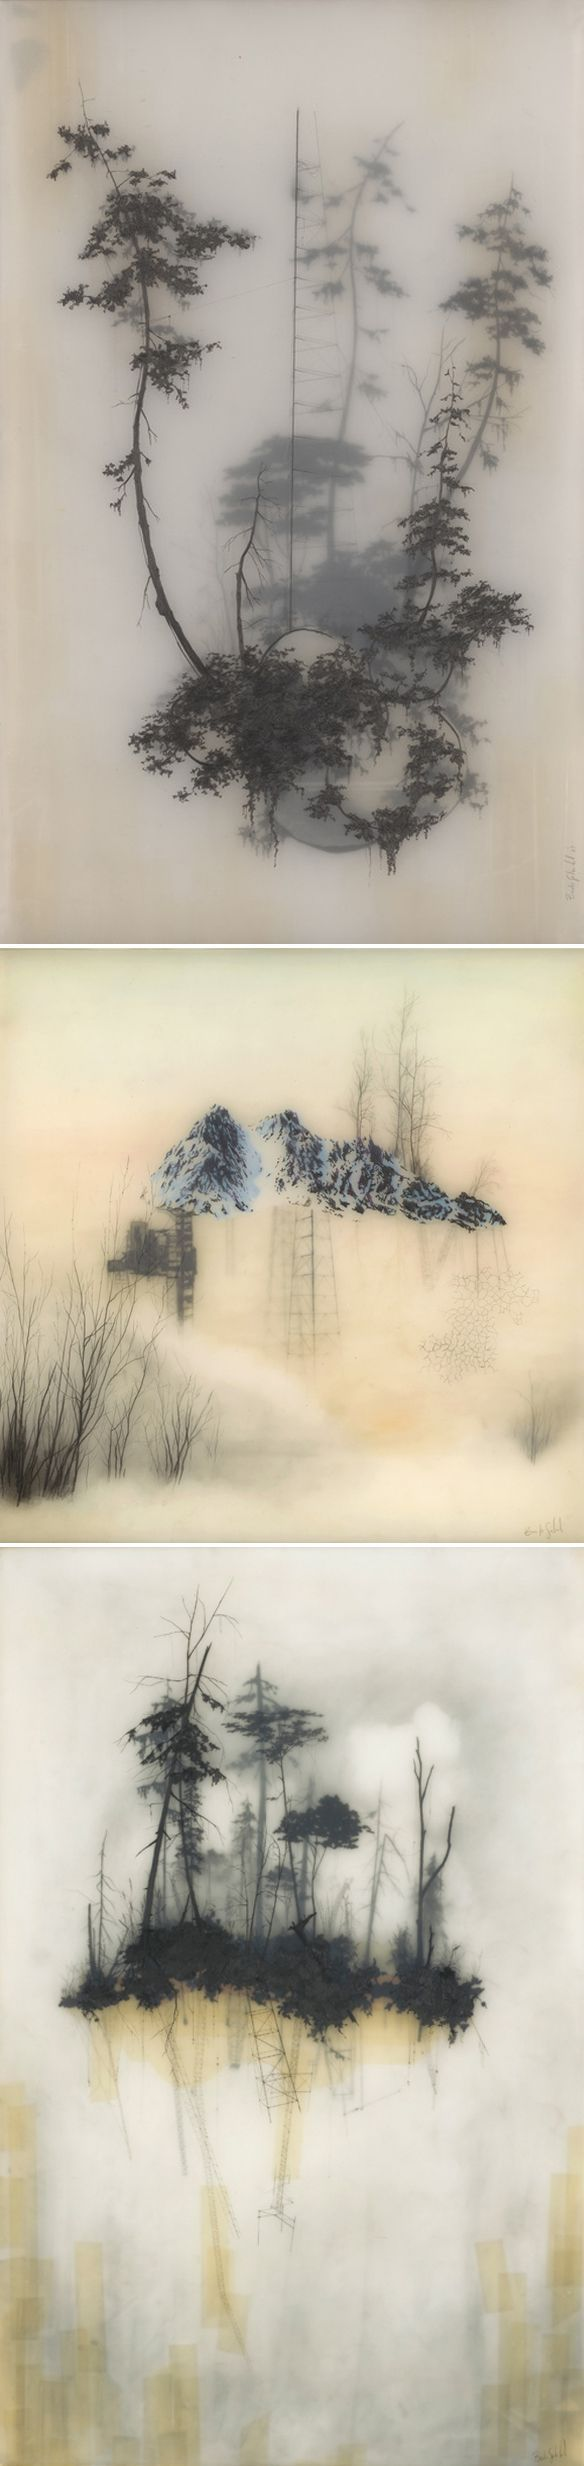 Encaustic paintings- wax and charcoal. Just stunning!